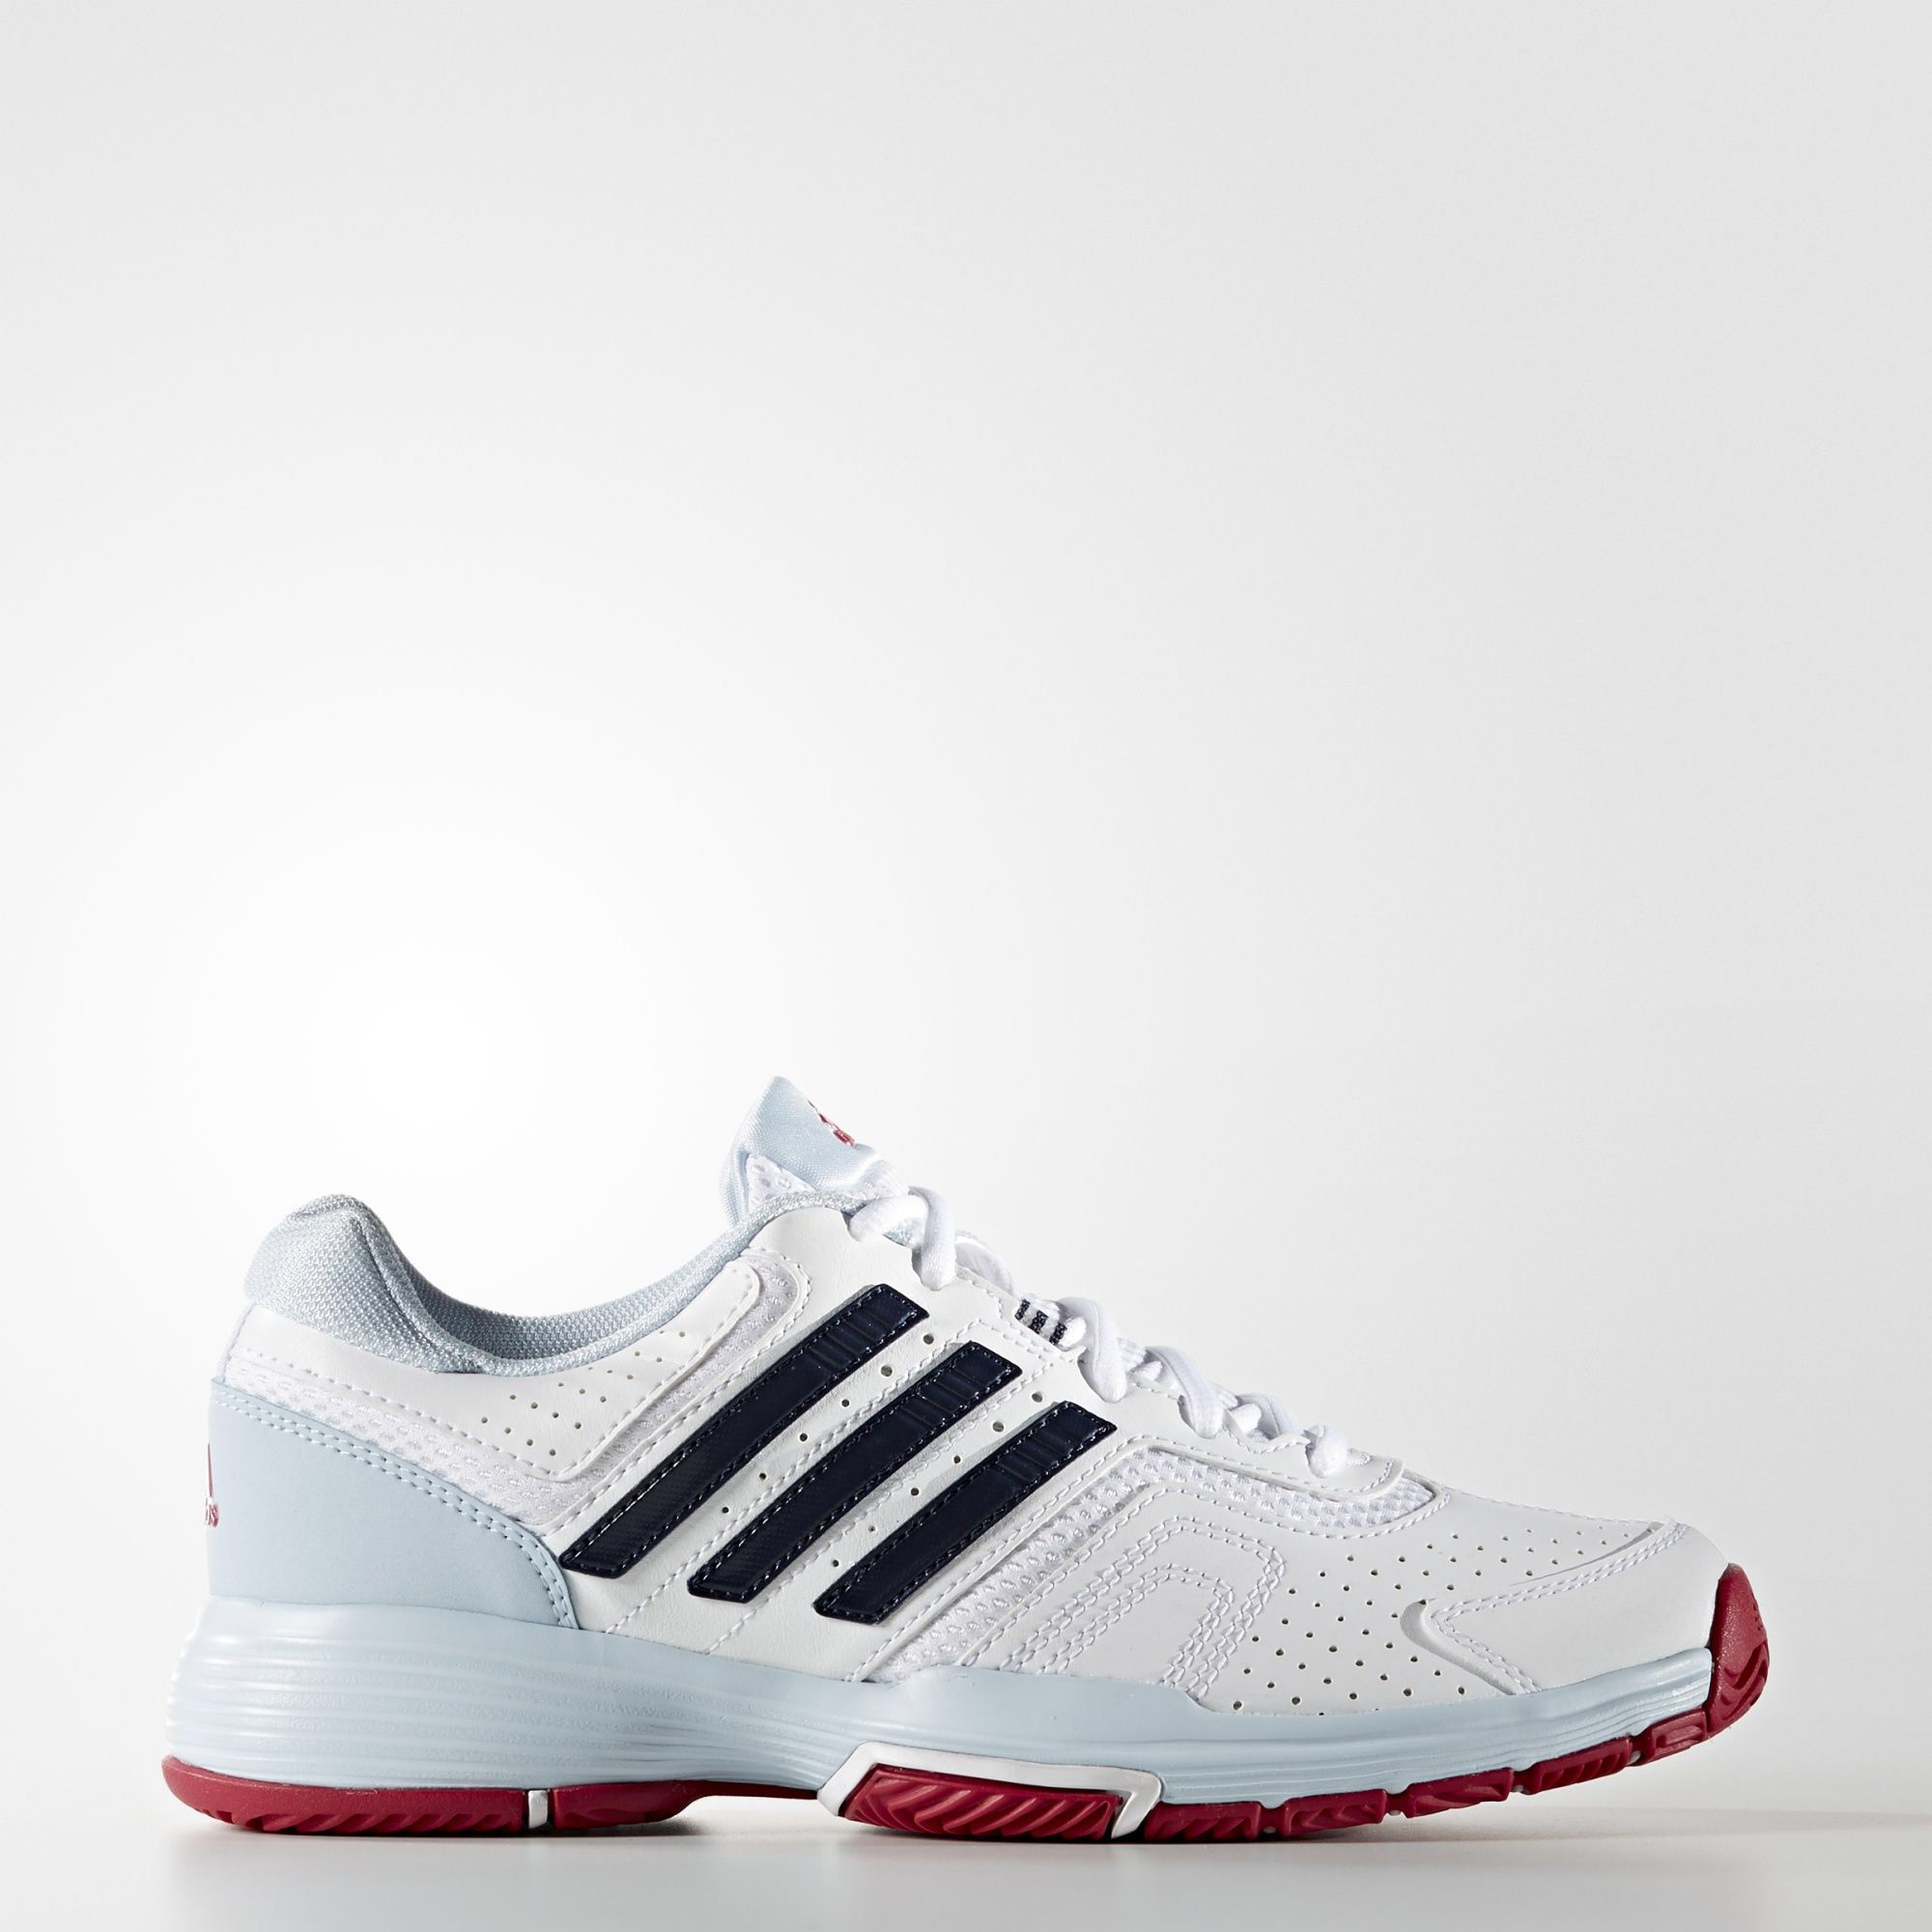 Adidas Barricade Court 2.0 Men's Tennis Shoes White 43